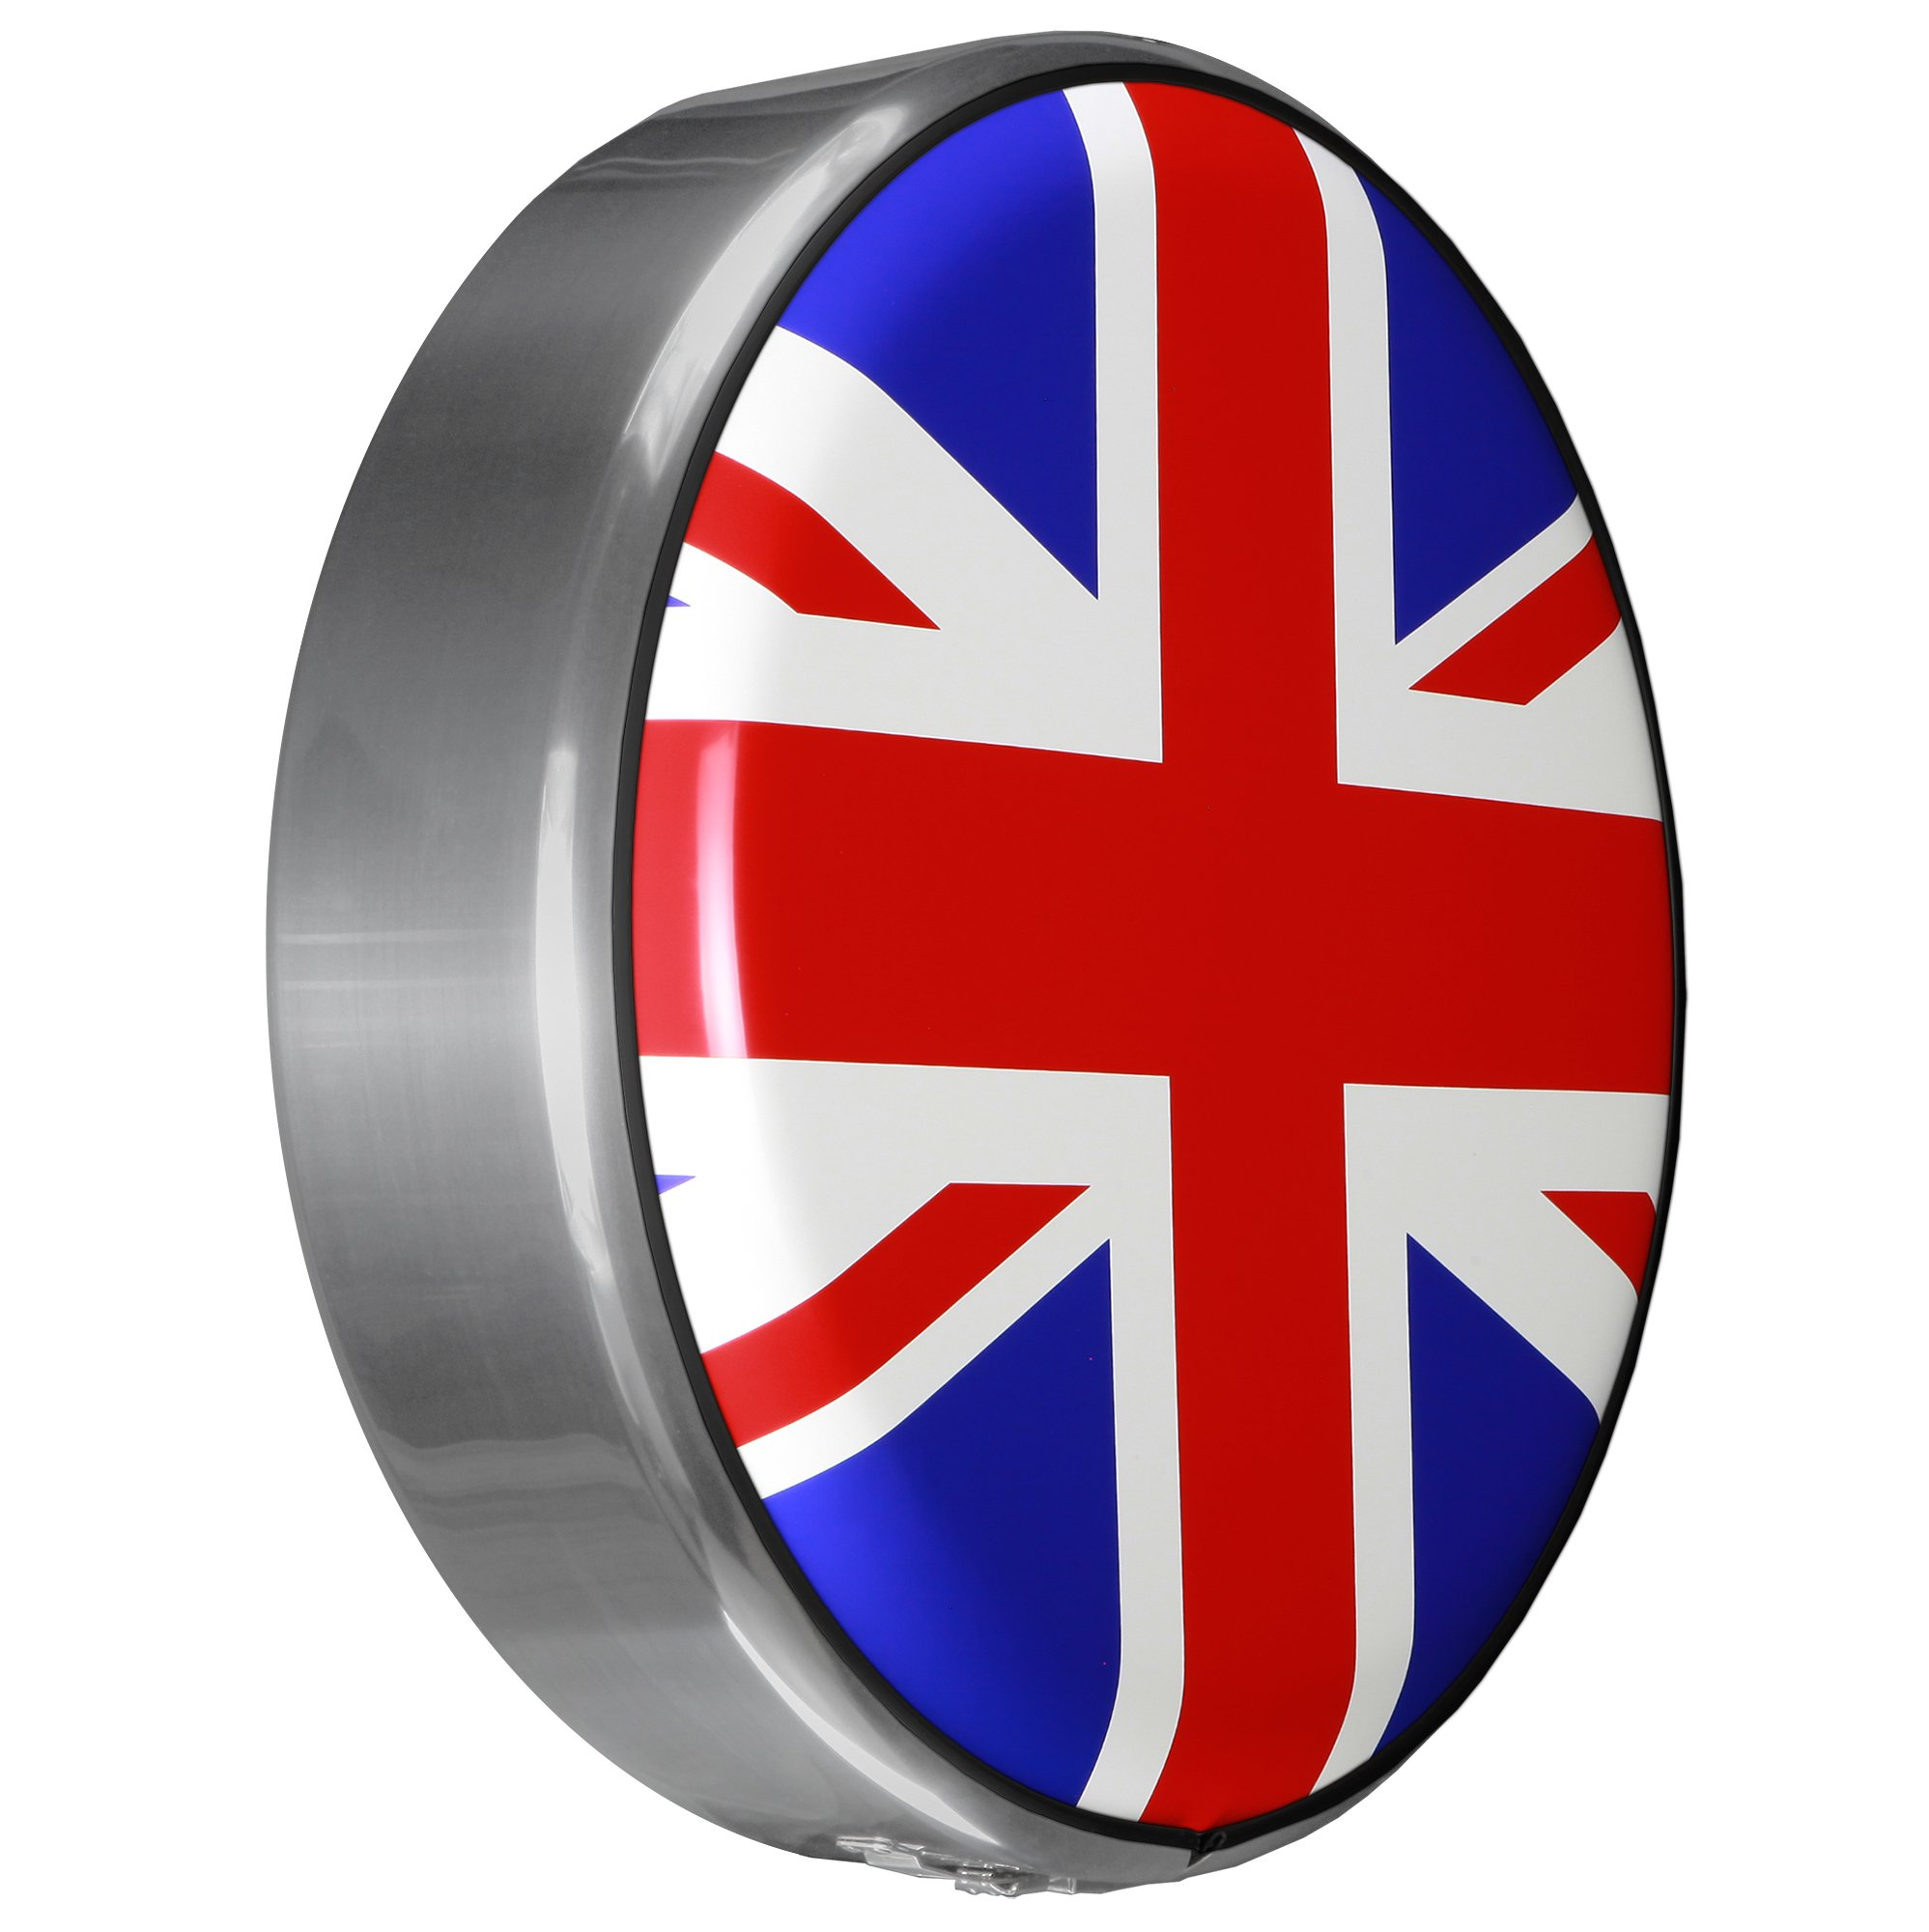 MasterSeries - Continental Tire Cover Kit (245/75R16 ) - (Molded Plastic Face & Polished Stainless Ring) - Union Jack Flag Print by Boomerang (Image #1)